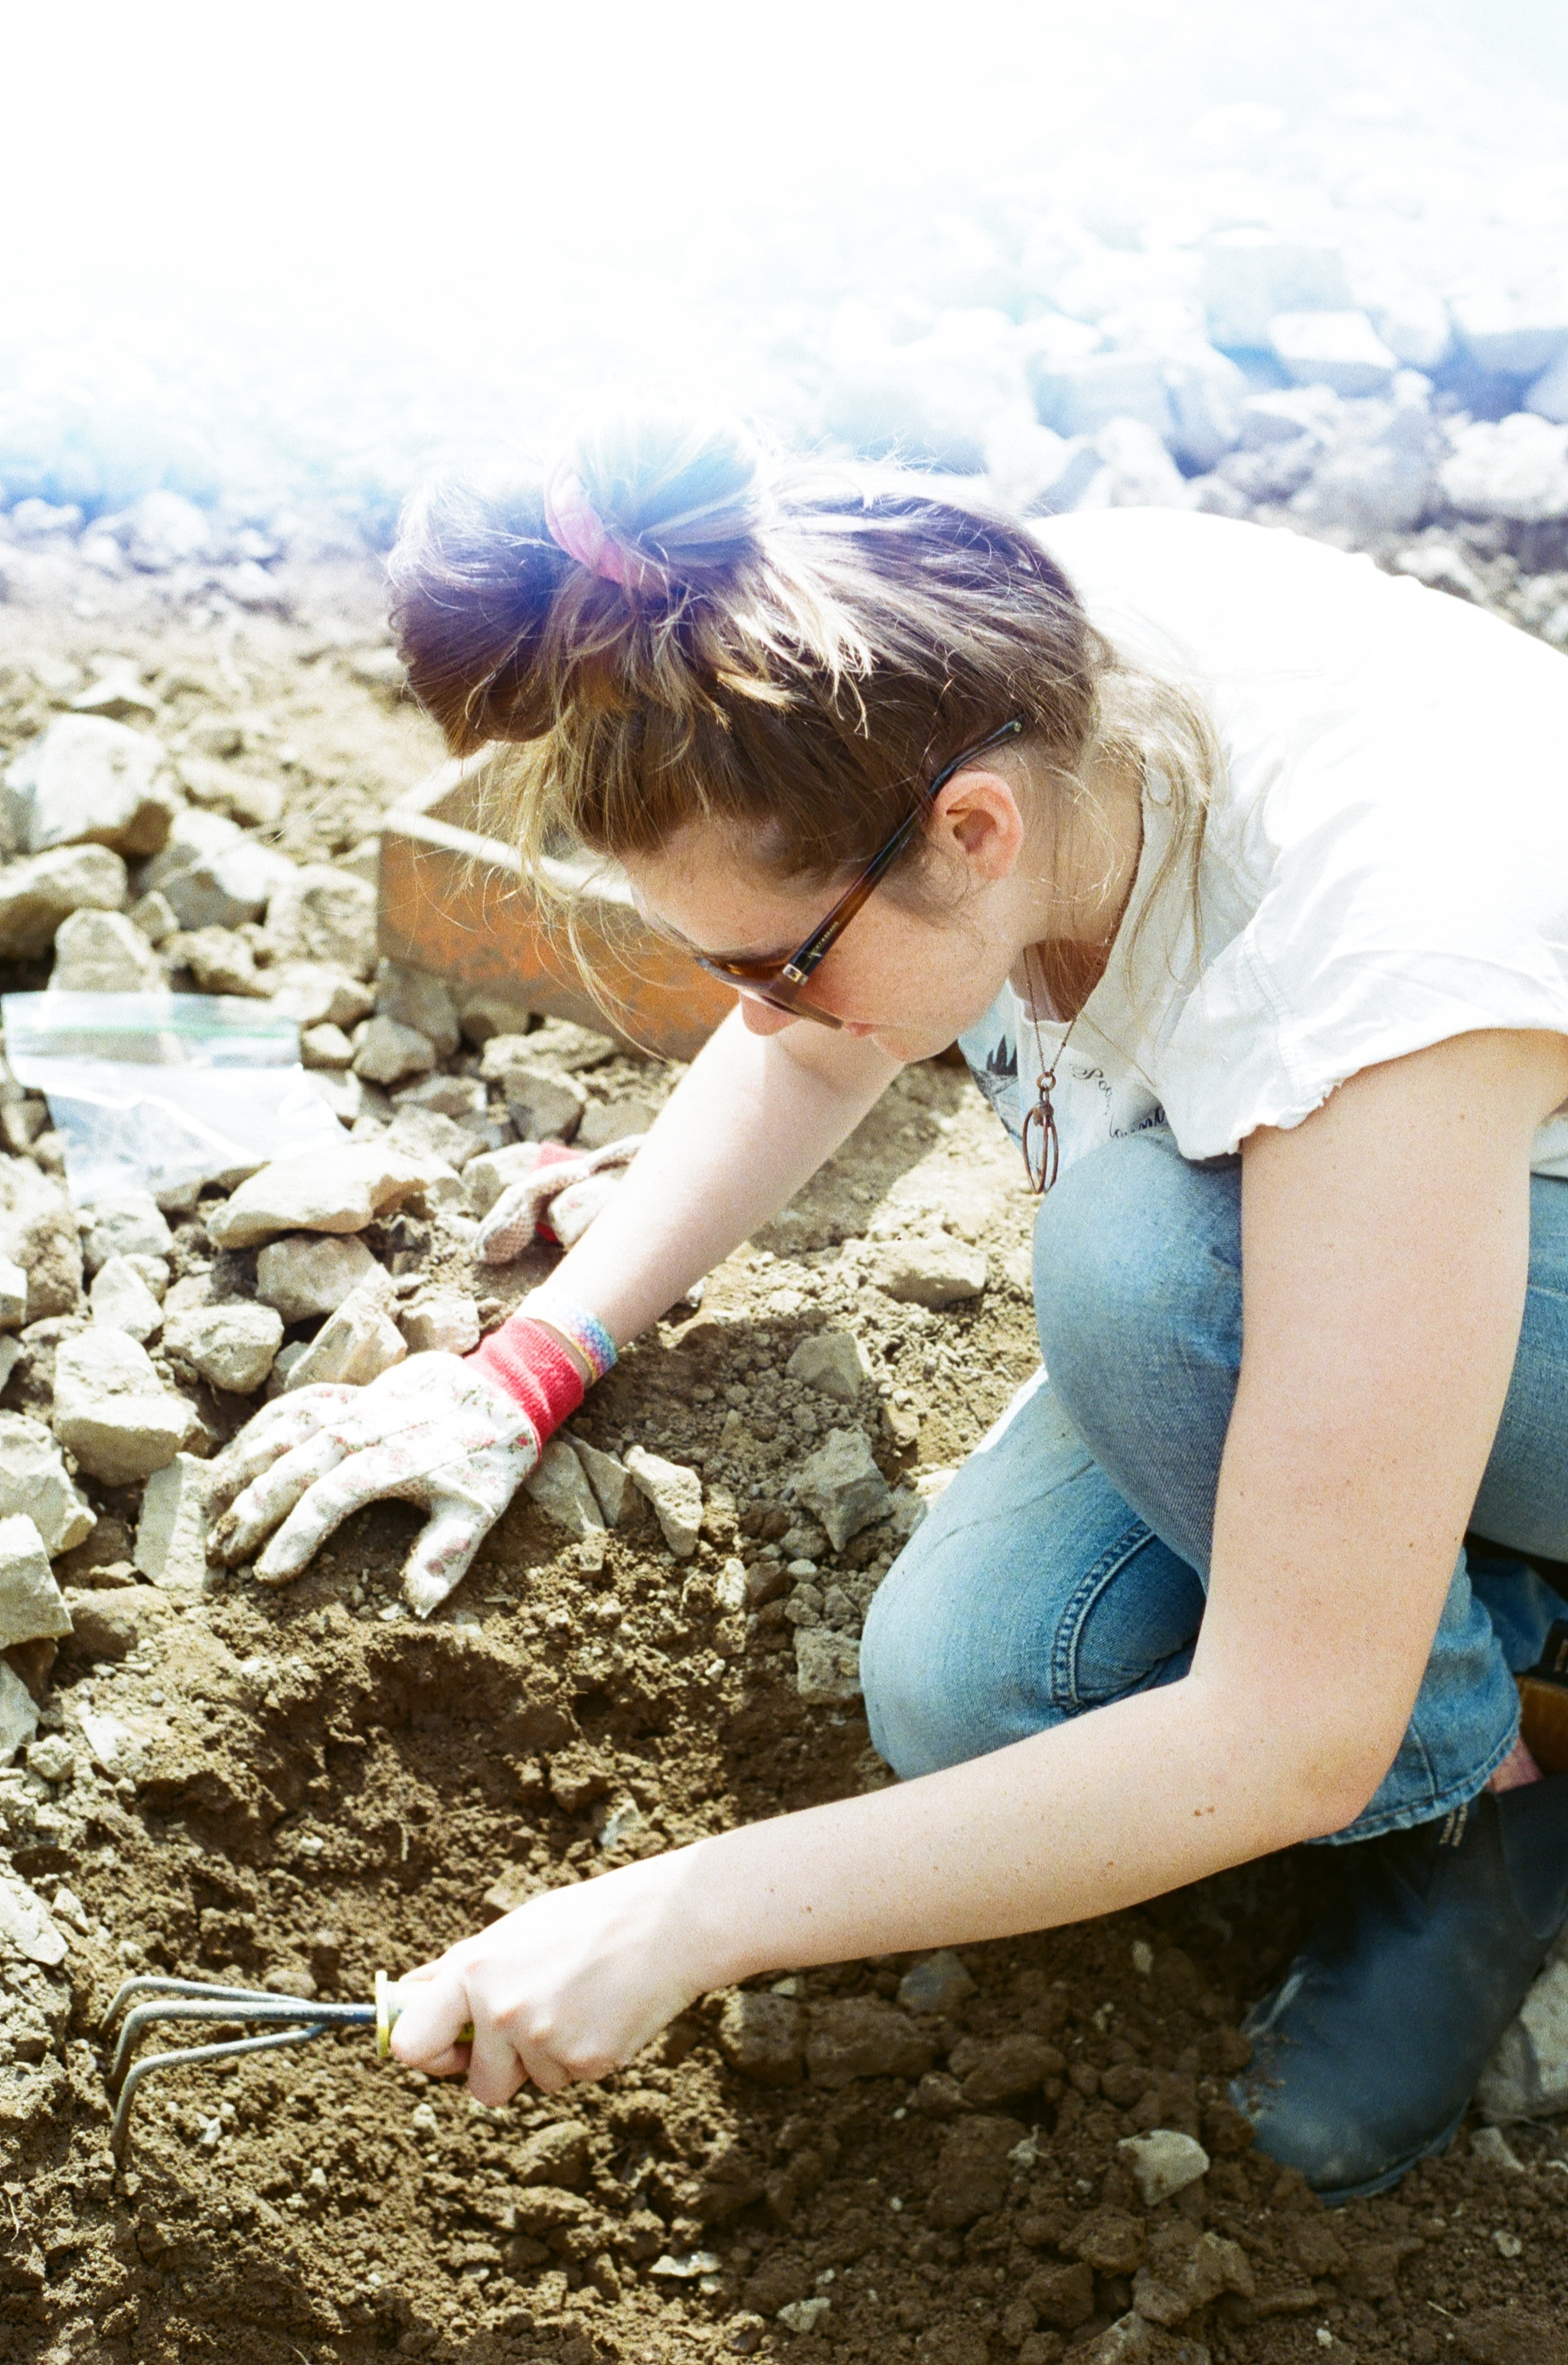 Me digging around for Herkimers in Herkimer County New York on my birthday this past summer!